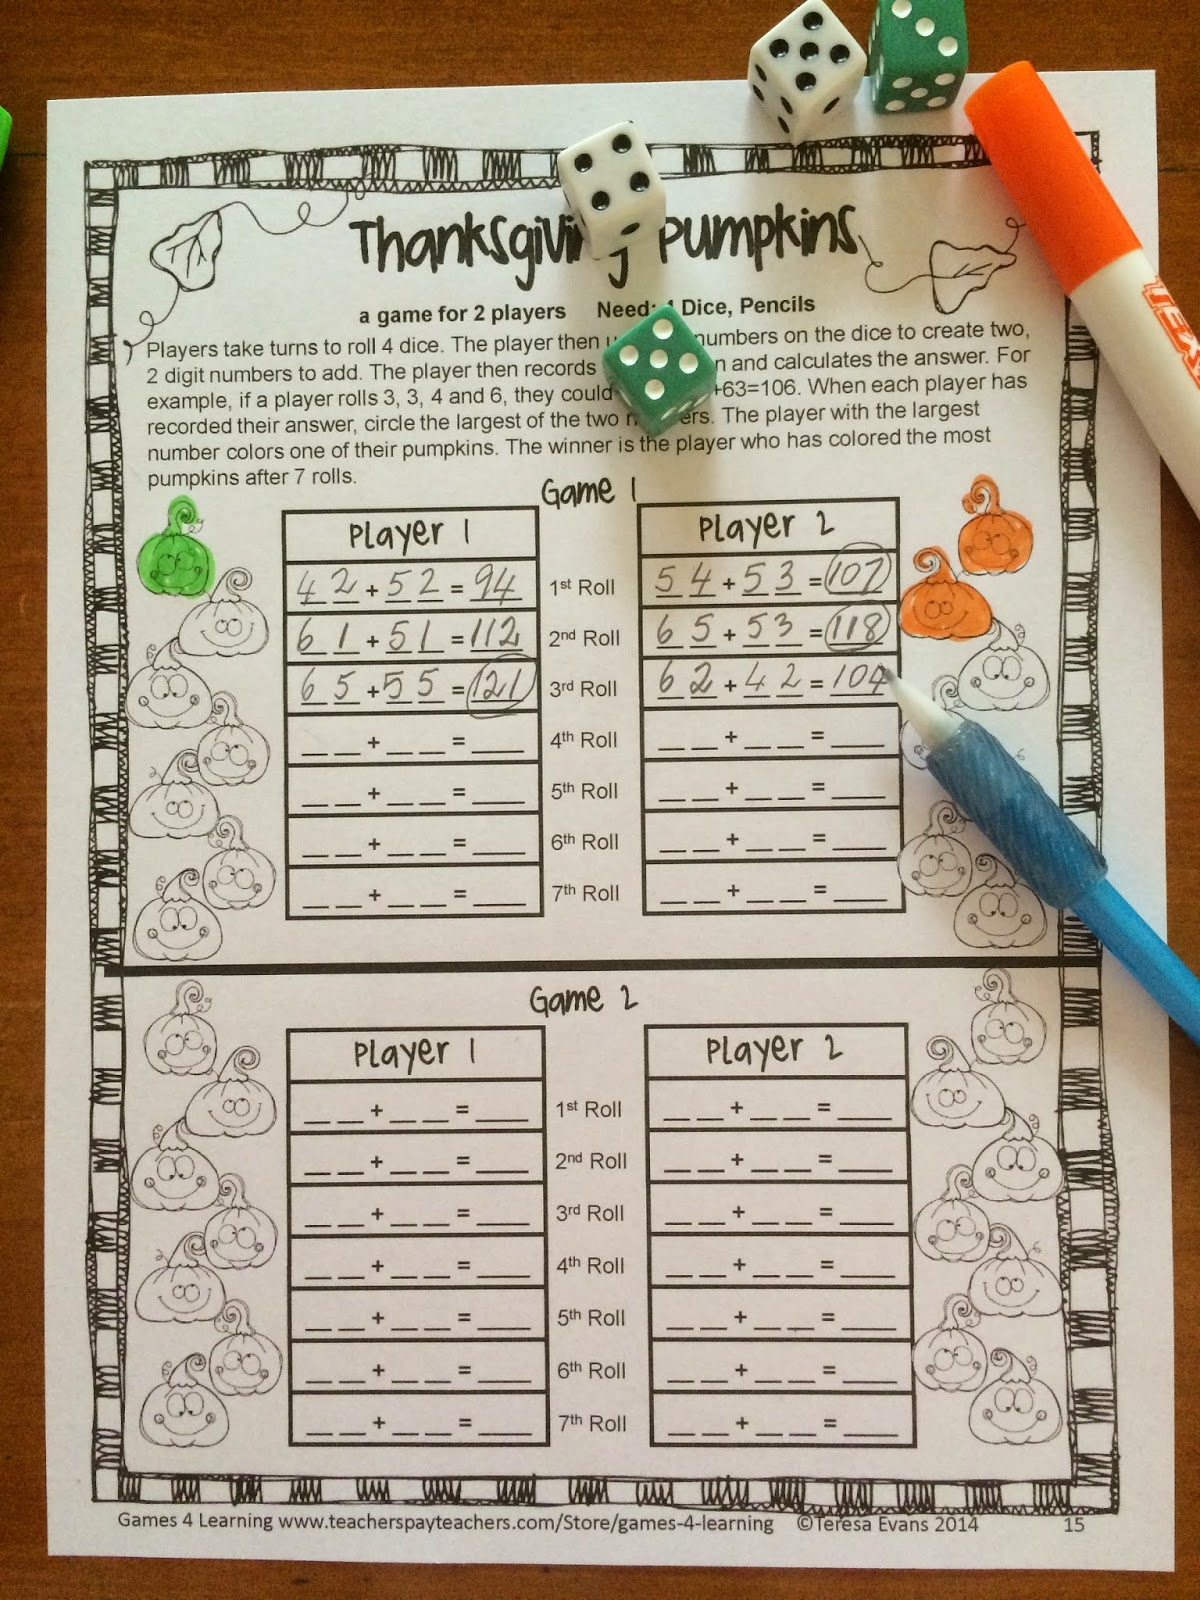 Fun Games 4 Learning Thanksgiving Math Games